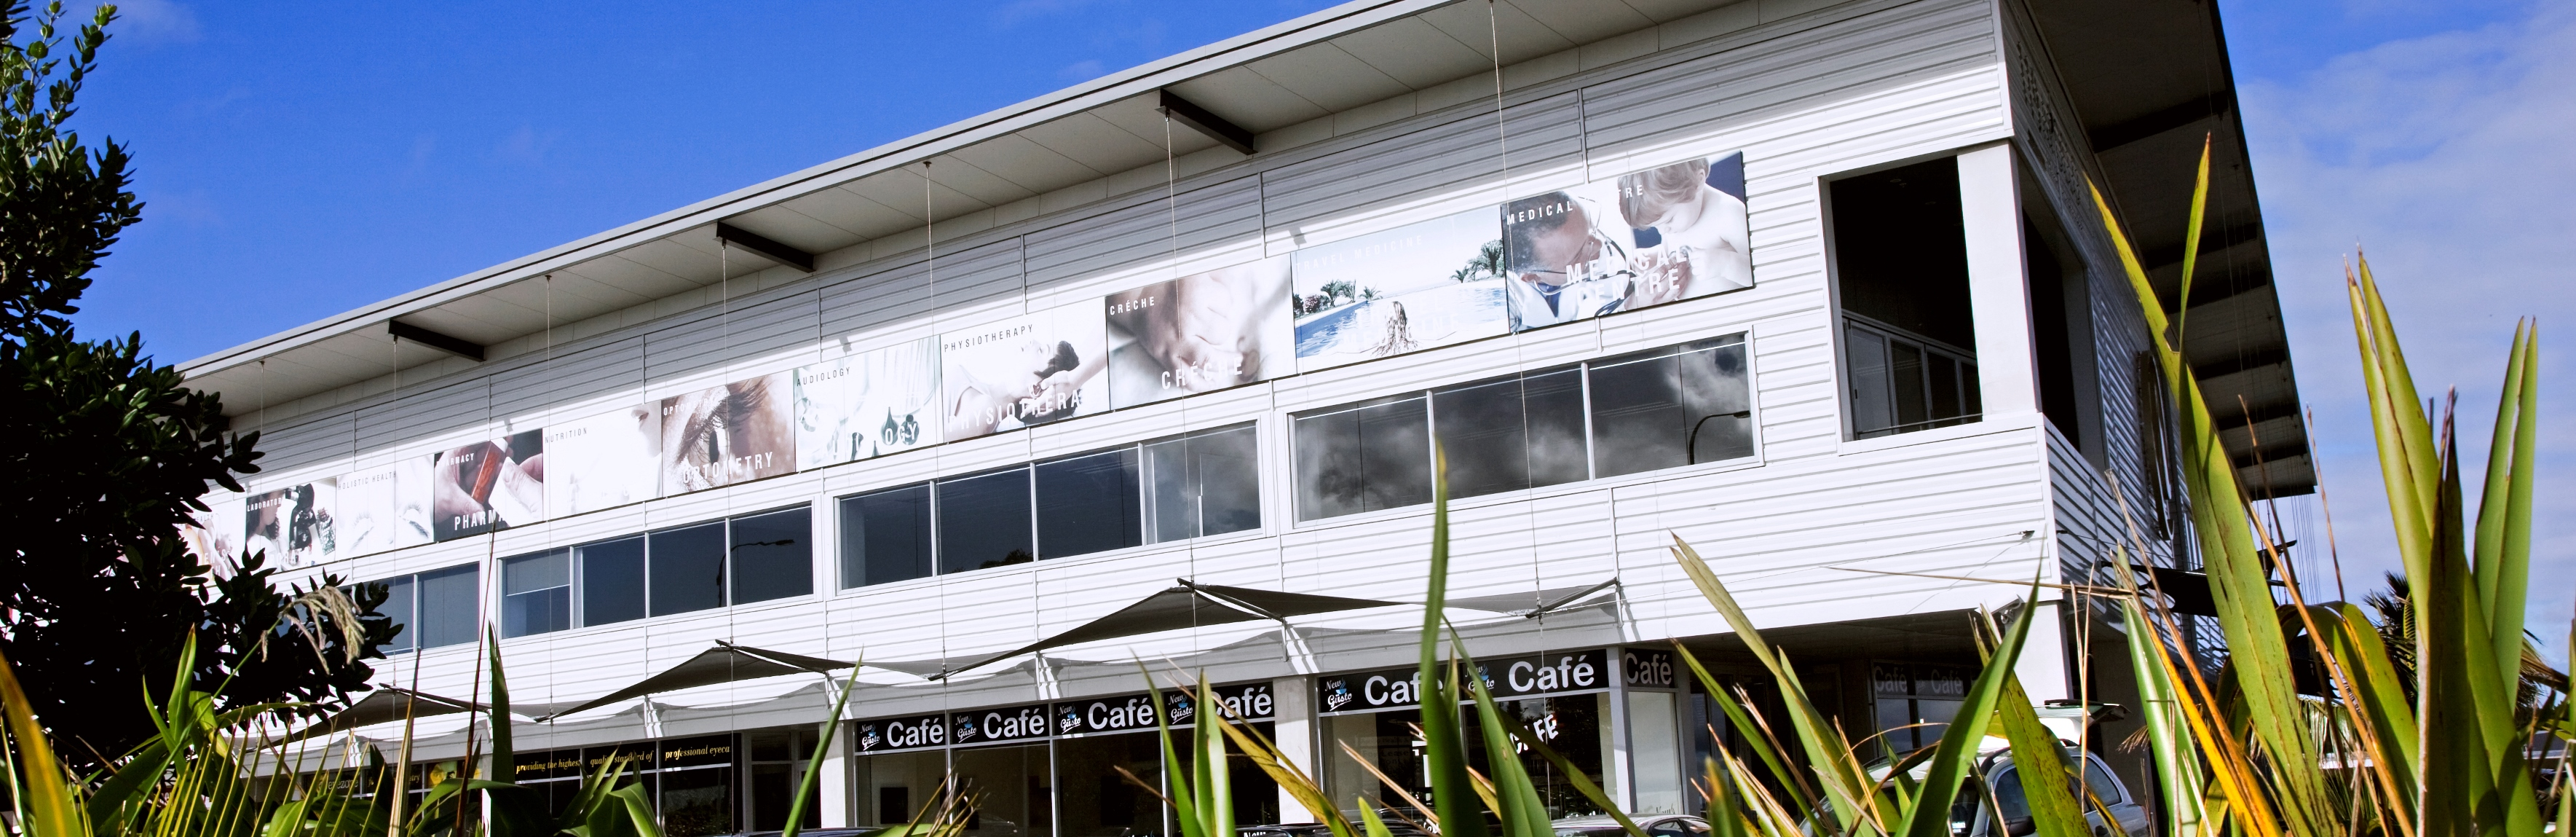 Apollo Health and Wellness Centre (Auckland, New Zealand)